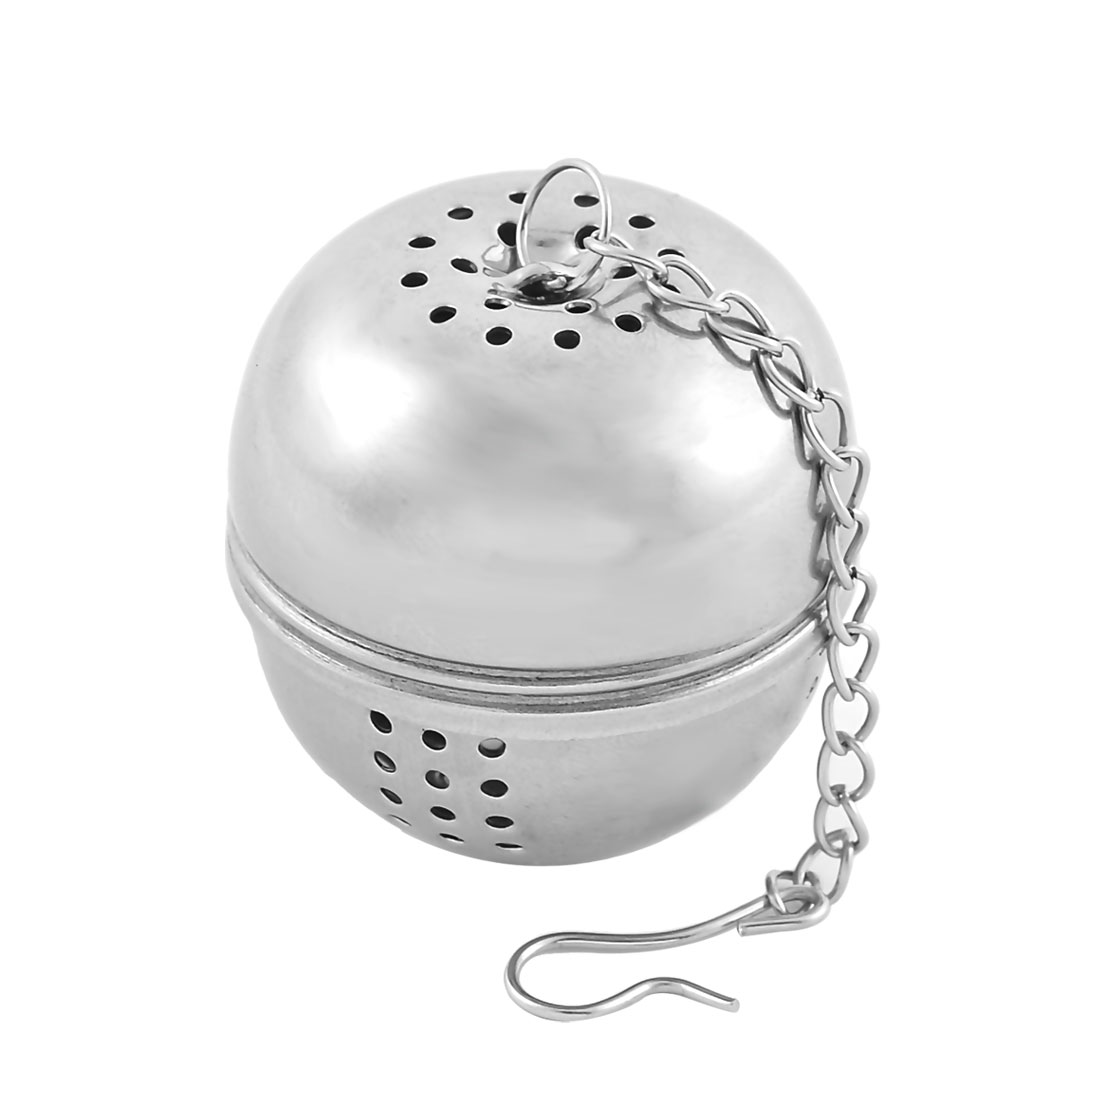 Stainless Steel Round Shaped Ball Infuser Filter Diffuser Tea Strainer 3.8cm Dia